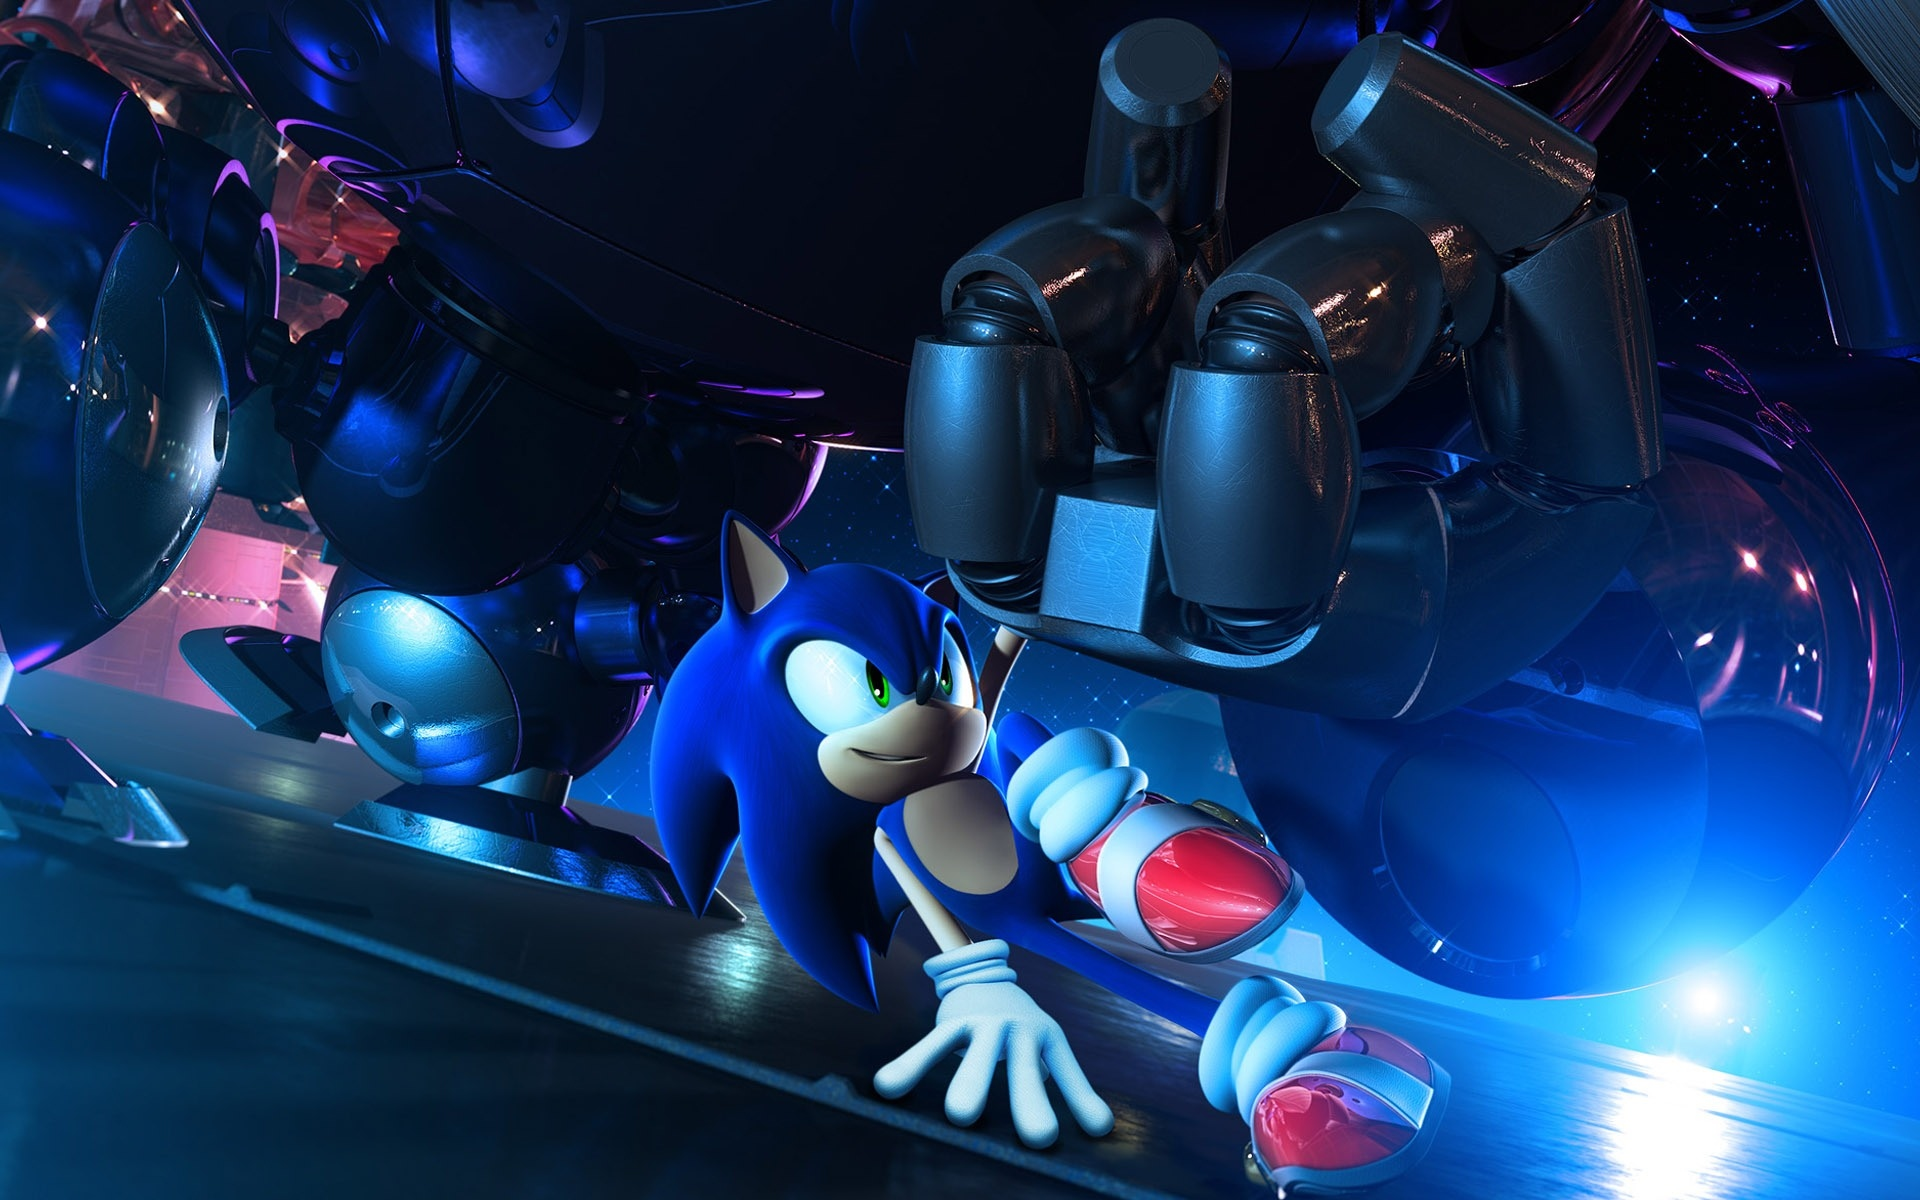 Image Sonic The Hedgehog Wallpapers And Stock Photos